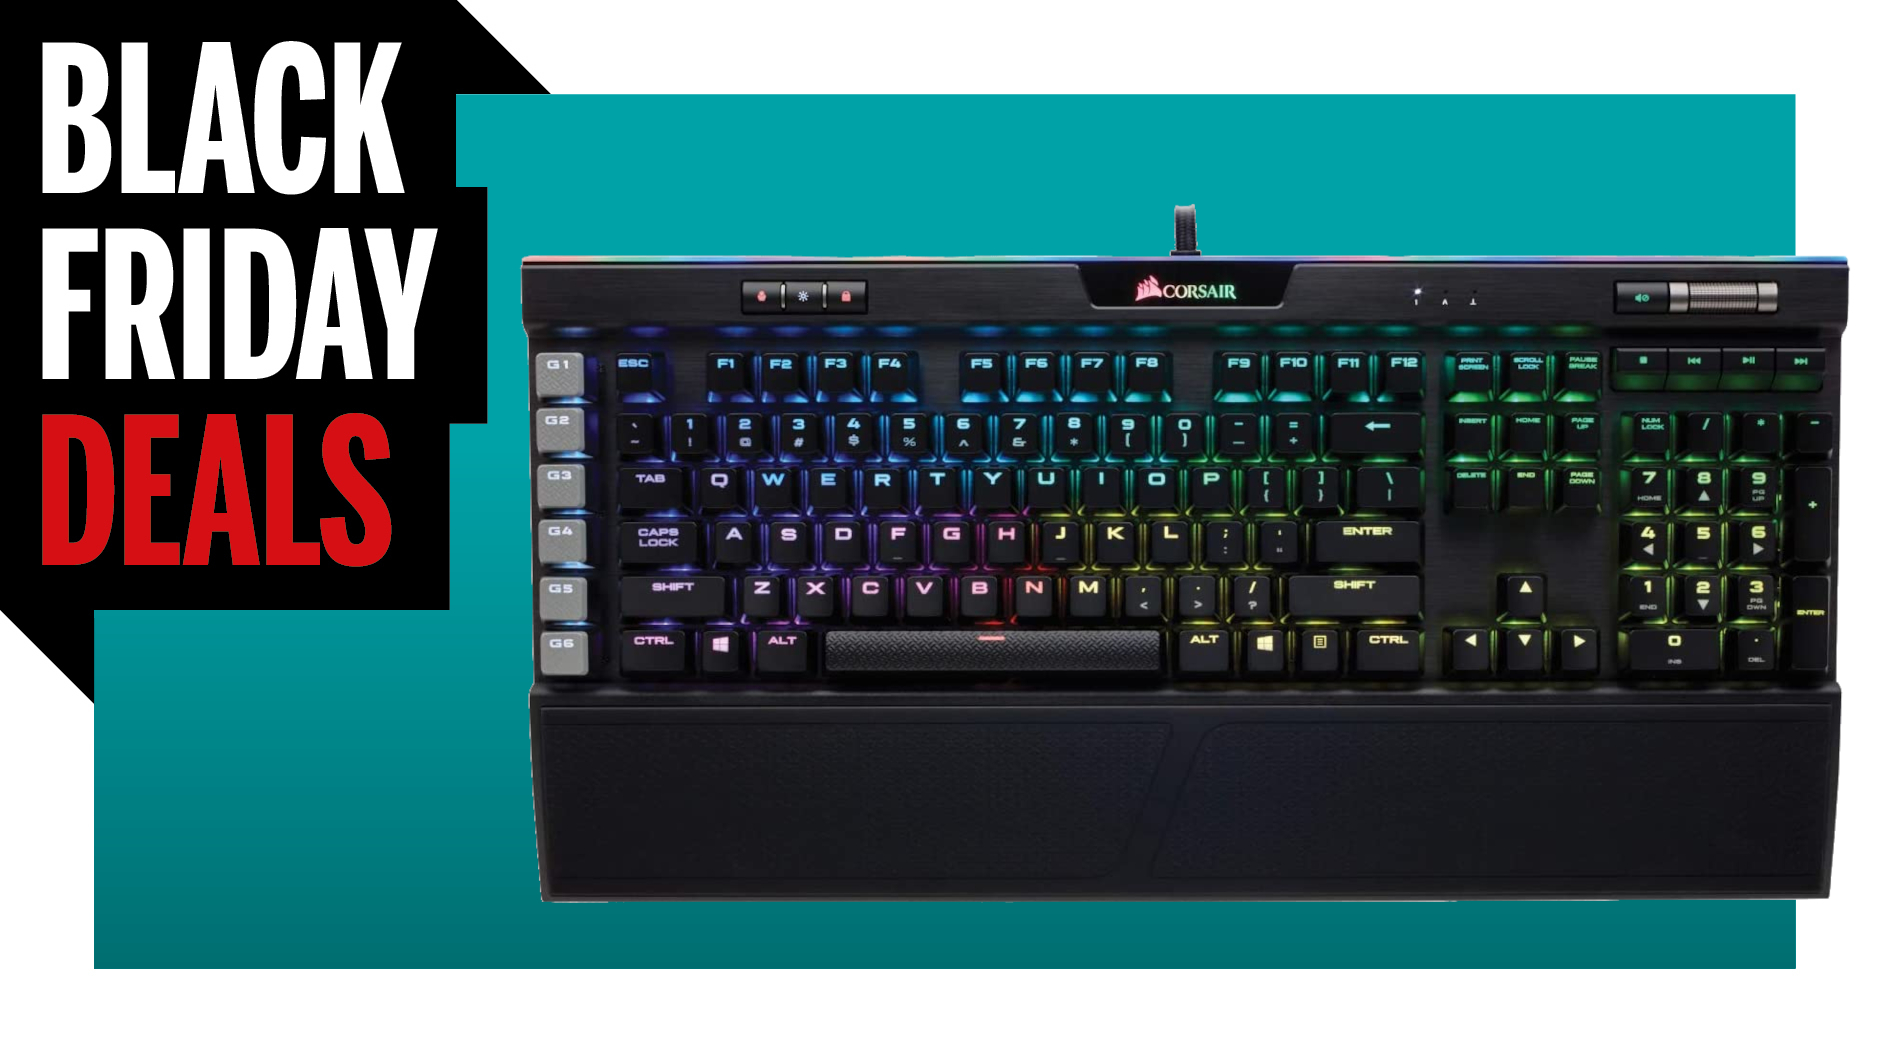 Save $70 on our favourite mechanical keyboard, the Corsair K95 RGB Platinum